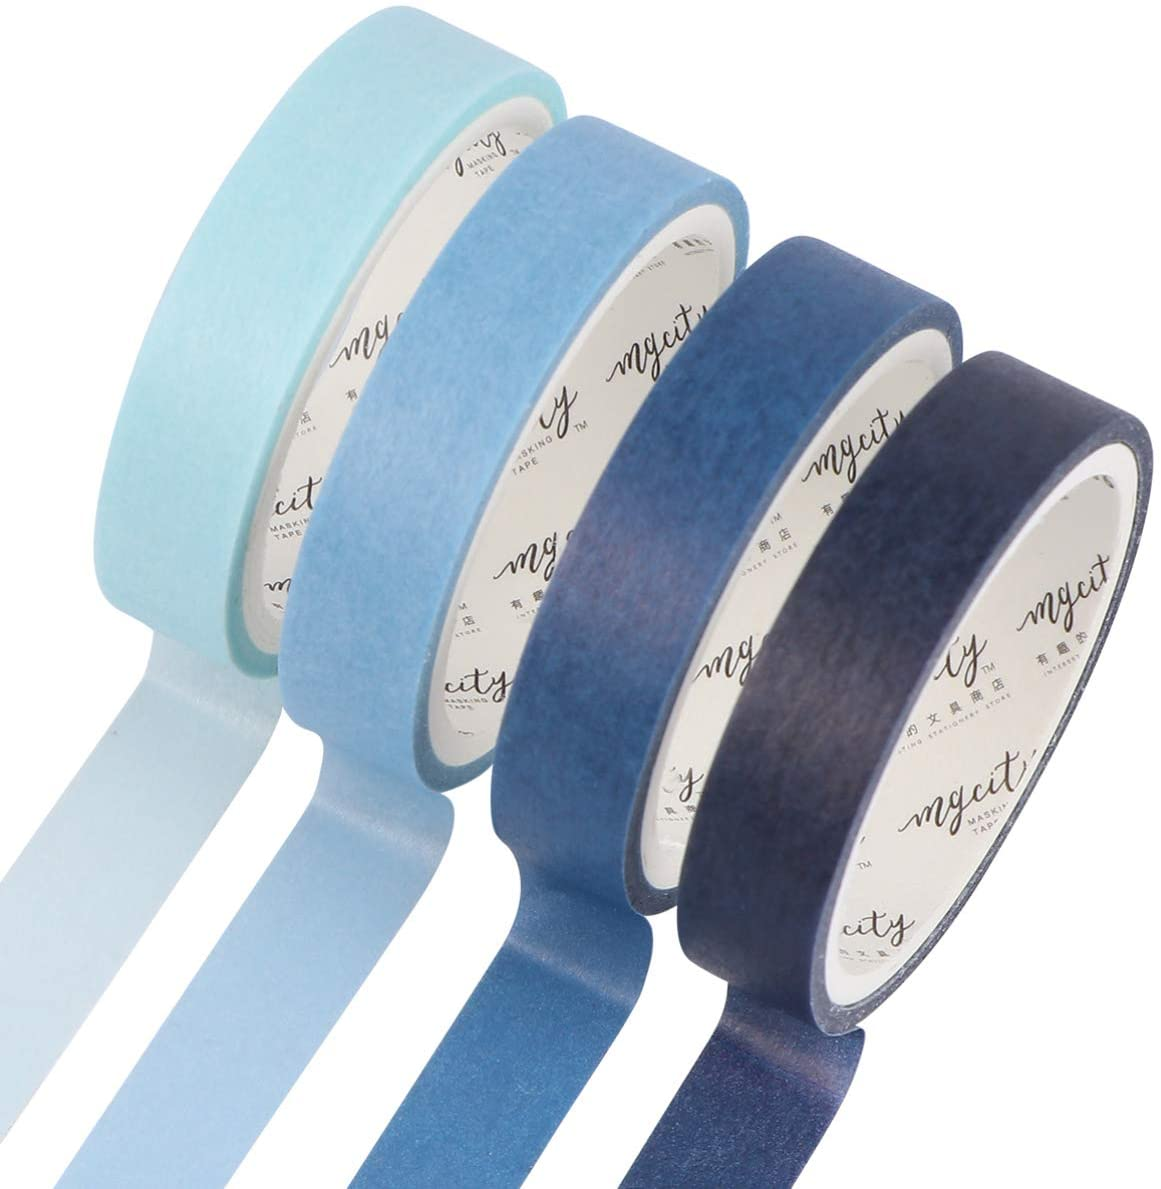 ARTIBETTER 8pcs Colored Masking Tape Washi Painters Decorative Tape Decals DIY Arts Crafts Labeling Packing Coding Supplies for Kids Blue